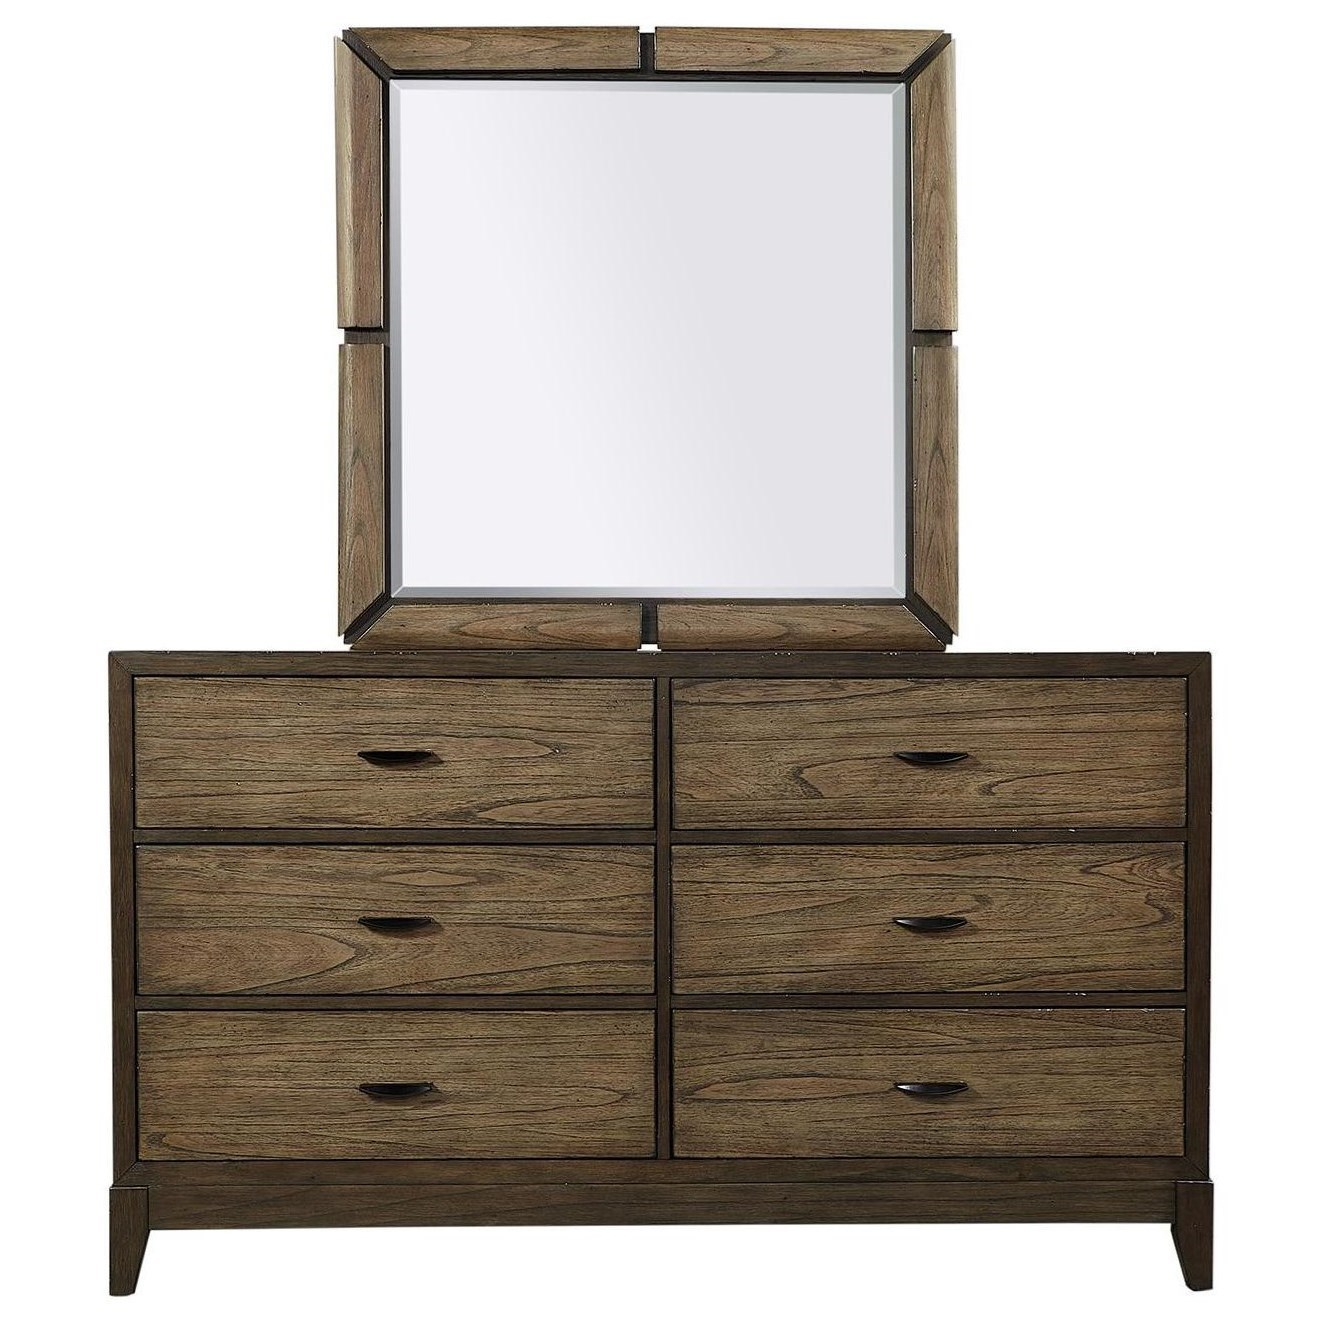 Westlake Dresser and Mirror Combination by Aspenhome at Baer's Furniture